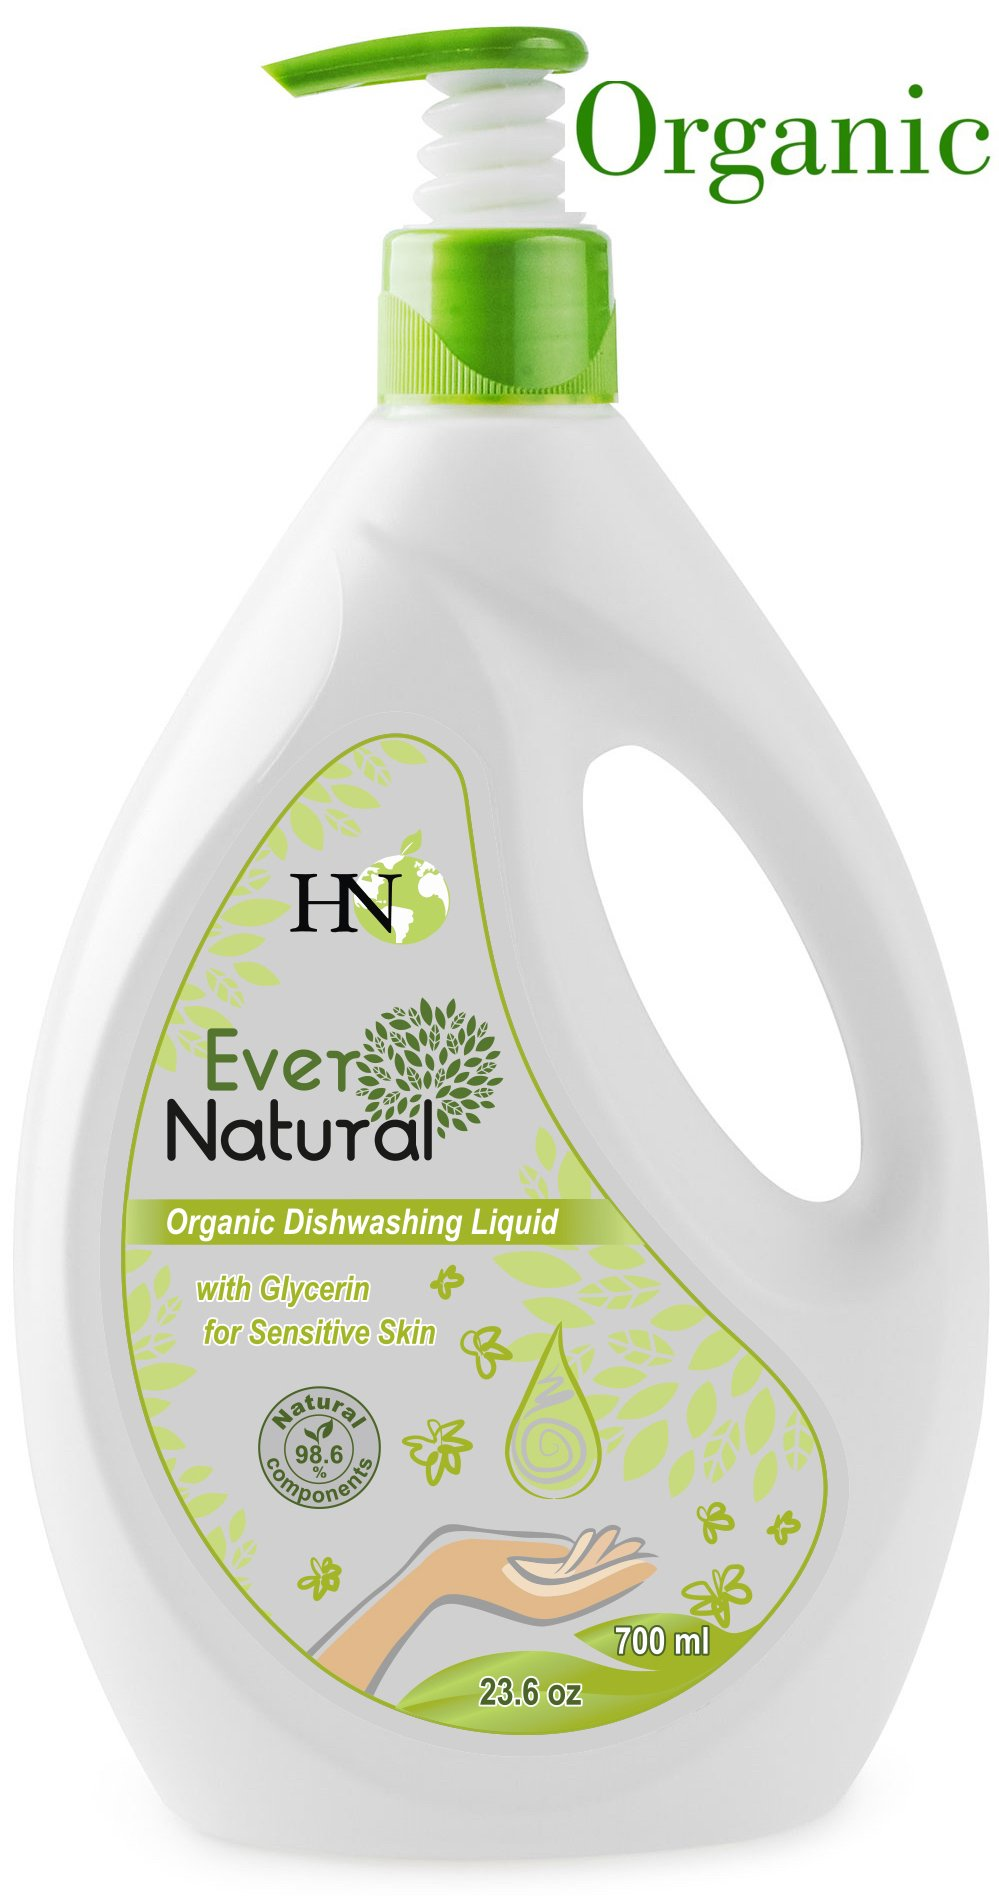 Organic Dishwashing Liquid With Glycerin For Sensitive Skin, Contains Safe Herbal Ingredients, Cares For Your Hands And Nails, Effective Even In Hard Water 23.06 oz